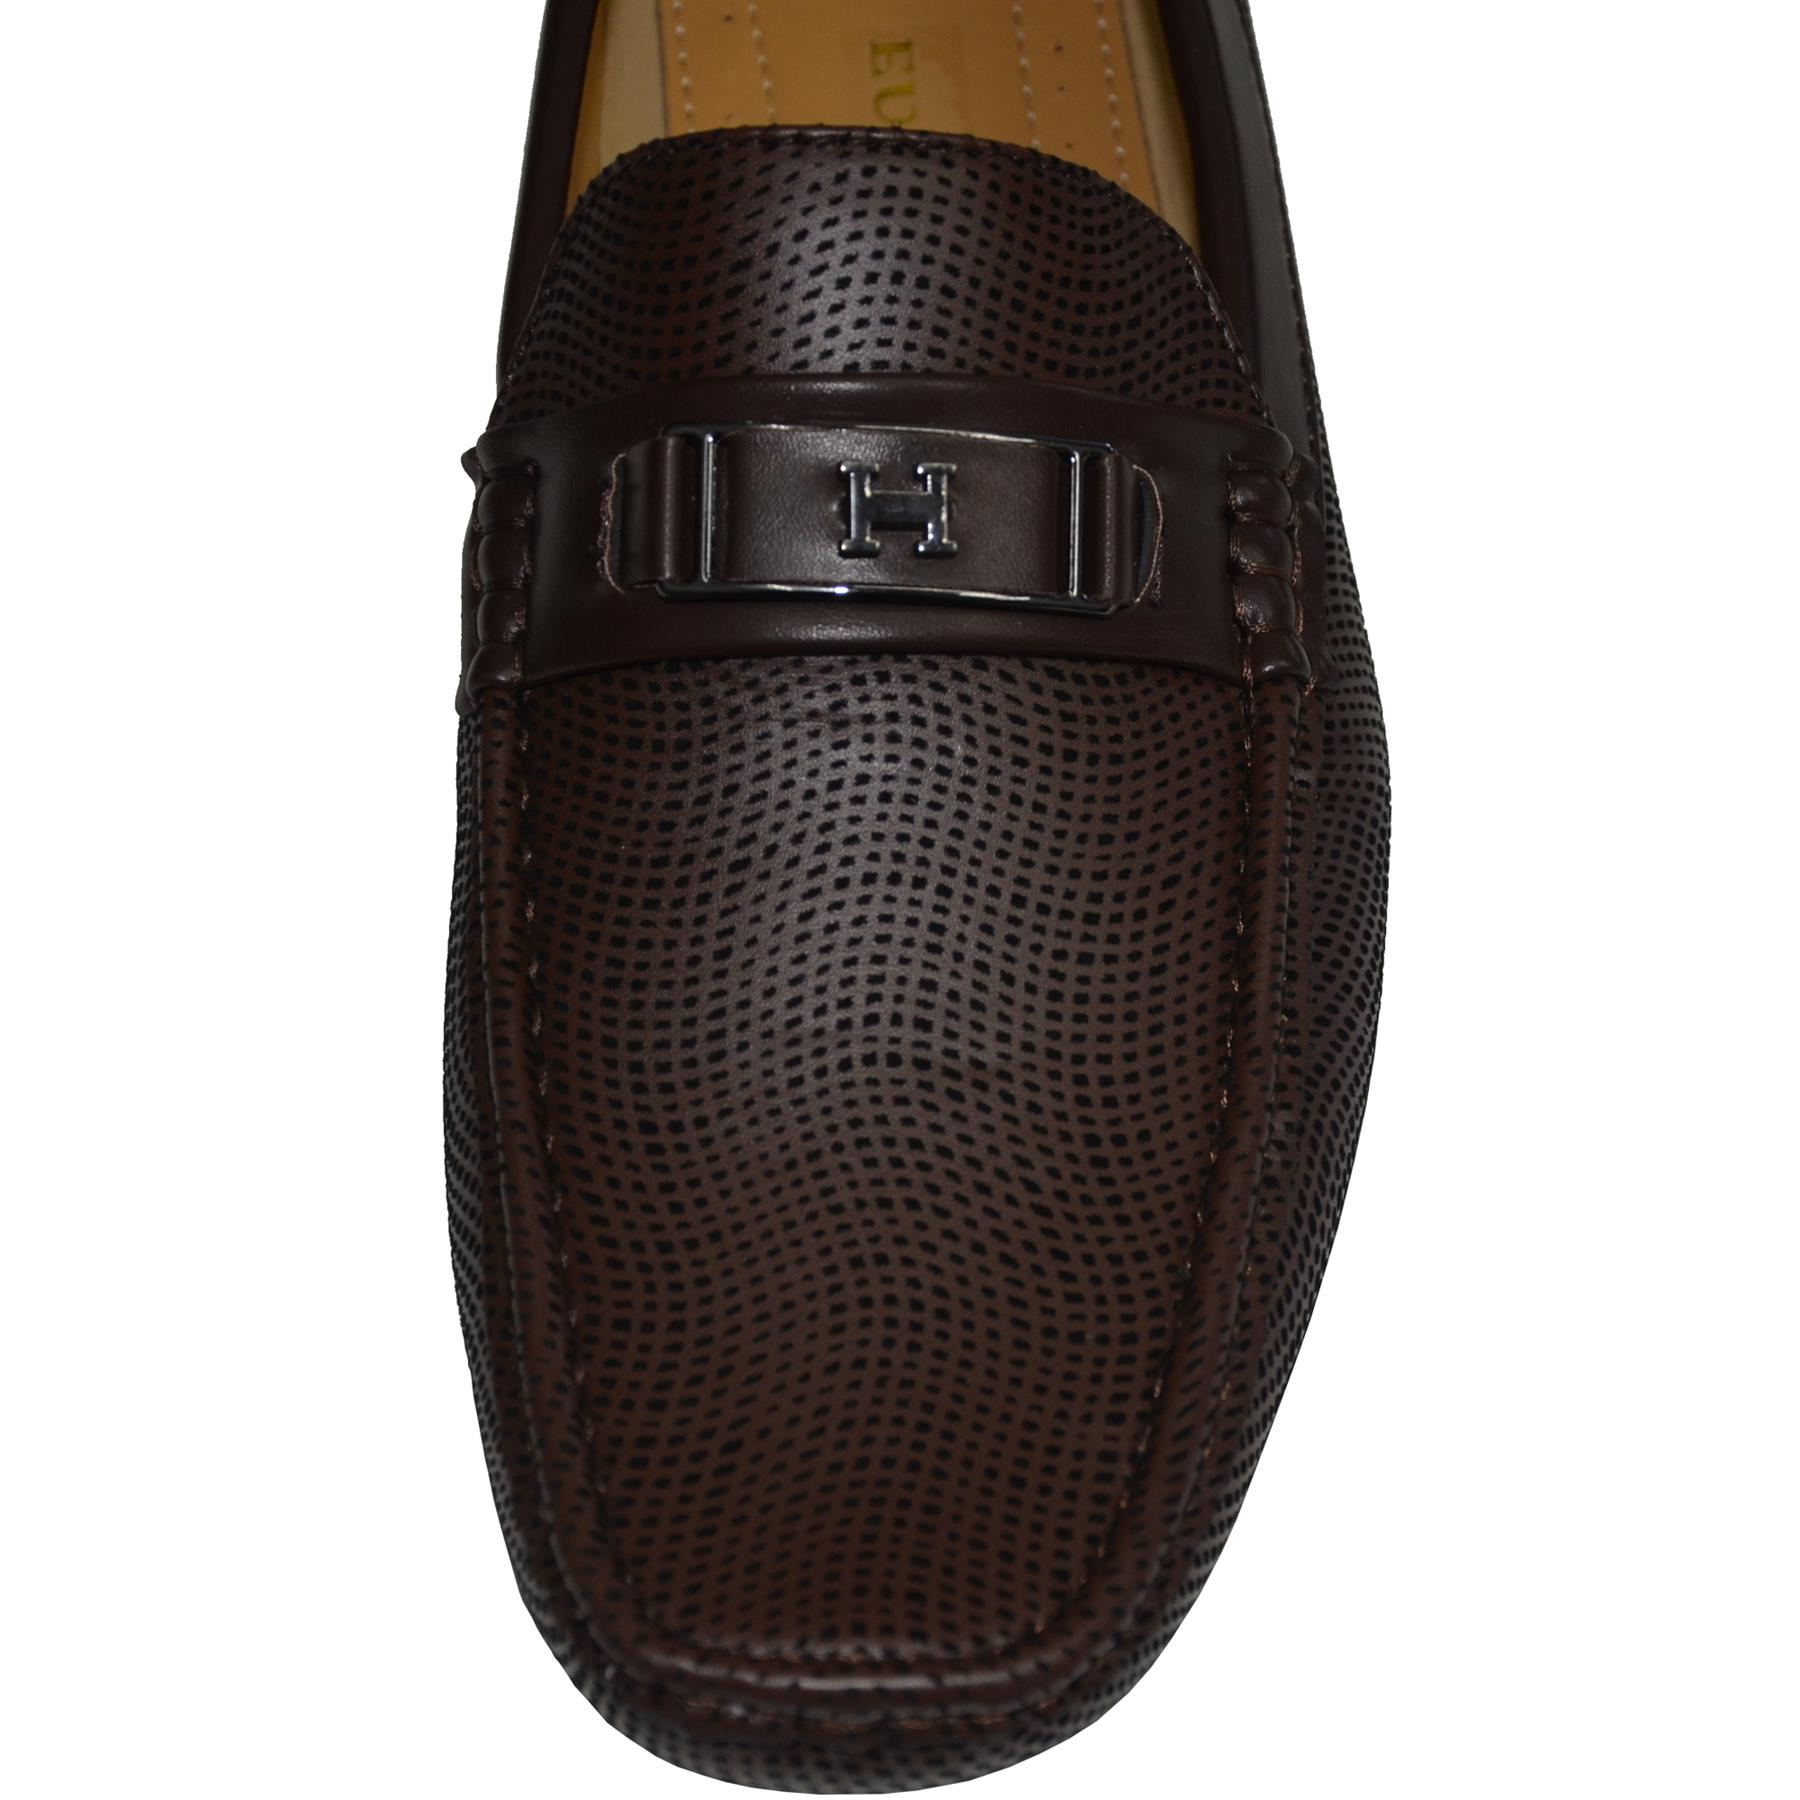 Mens-Slip-Ons-Shoes-Boat-Deck-Driving-Smart-Buckle-Moccasins-Suede-Look-Loafers thumbnail 20